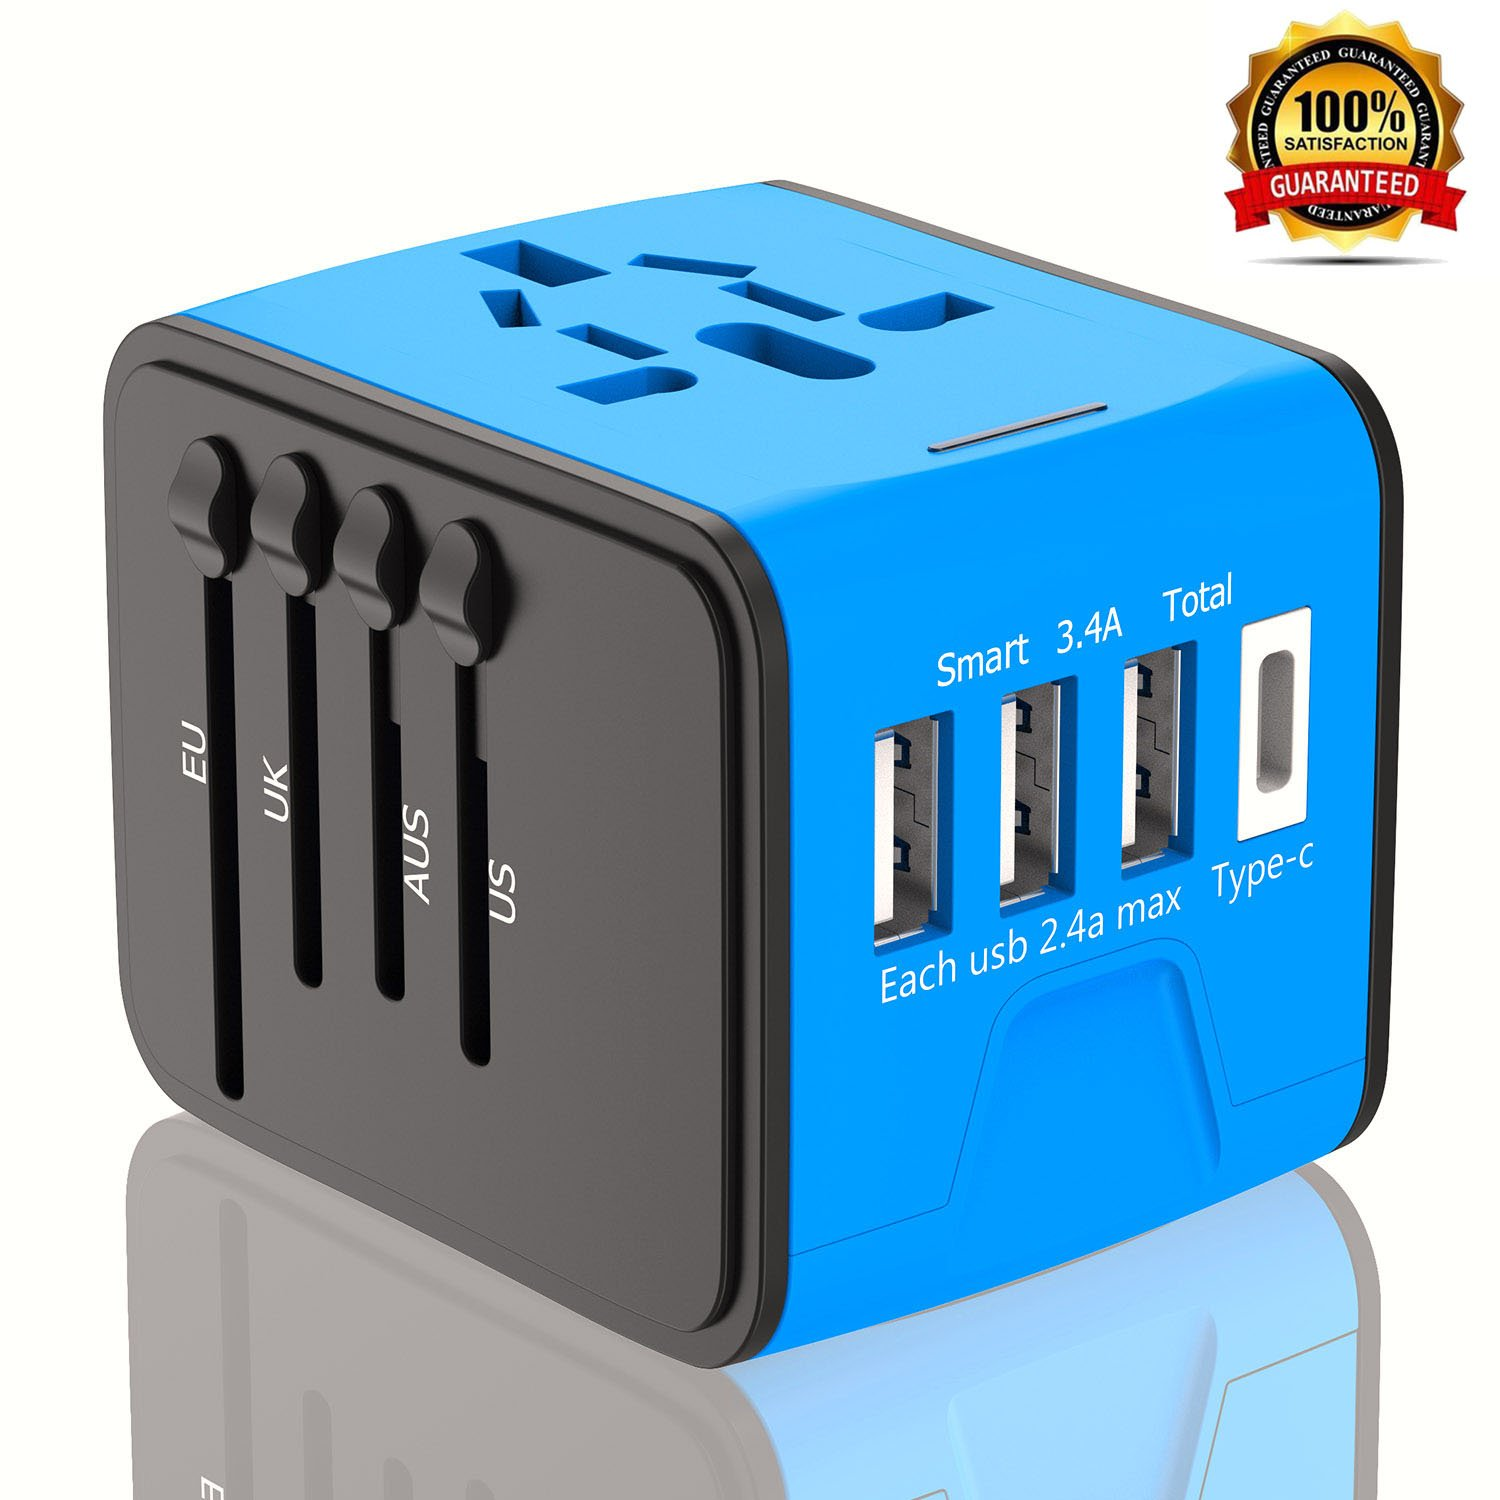 Travel Adapter, International Power Adapter With 3.4A 3 USB & Type C Charger, European Adapter, Universal Travel Adapter USB Wall Charger AC Outlet for Europe UK US AU & Asia